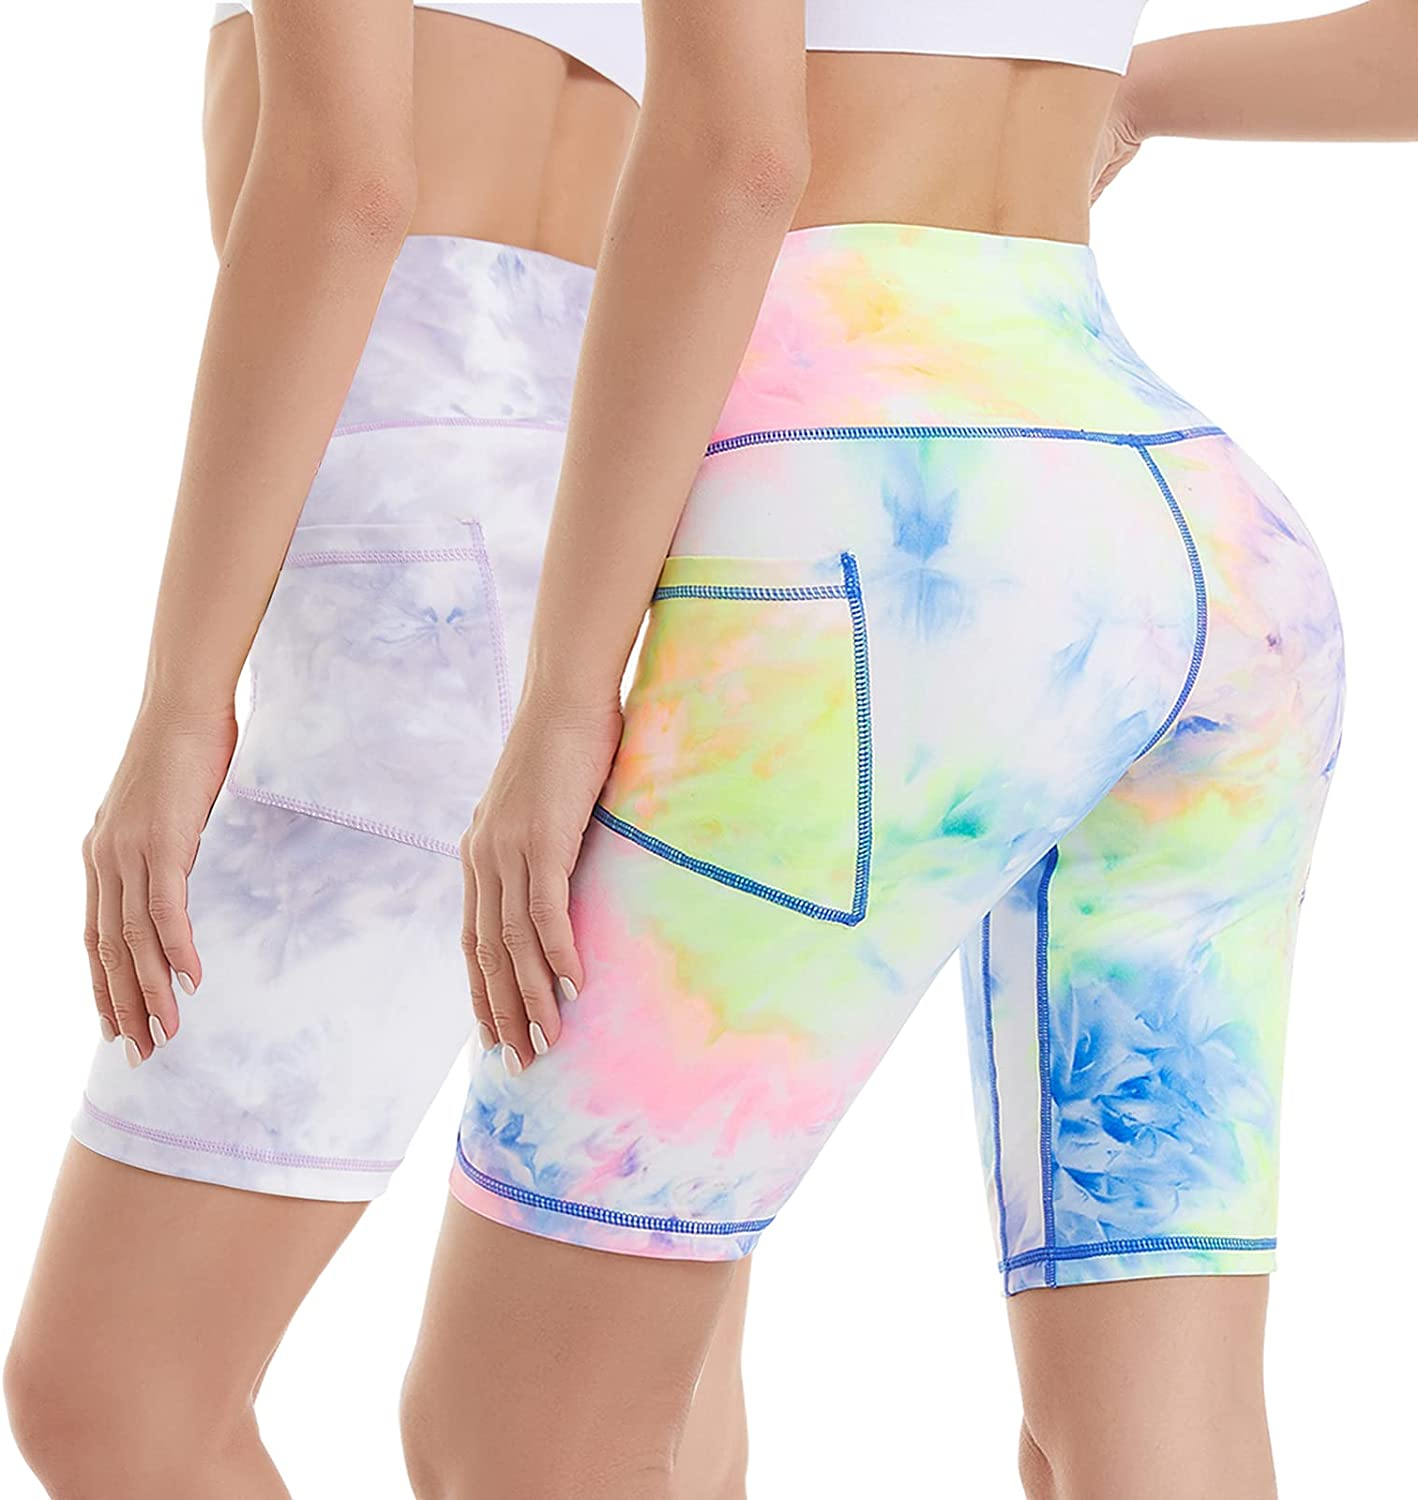 iniber Women's Free shipping on posting reviews 7